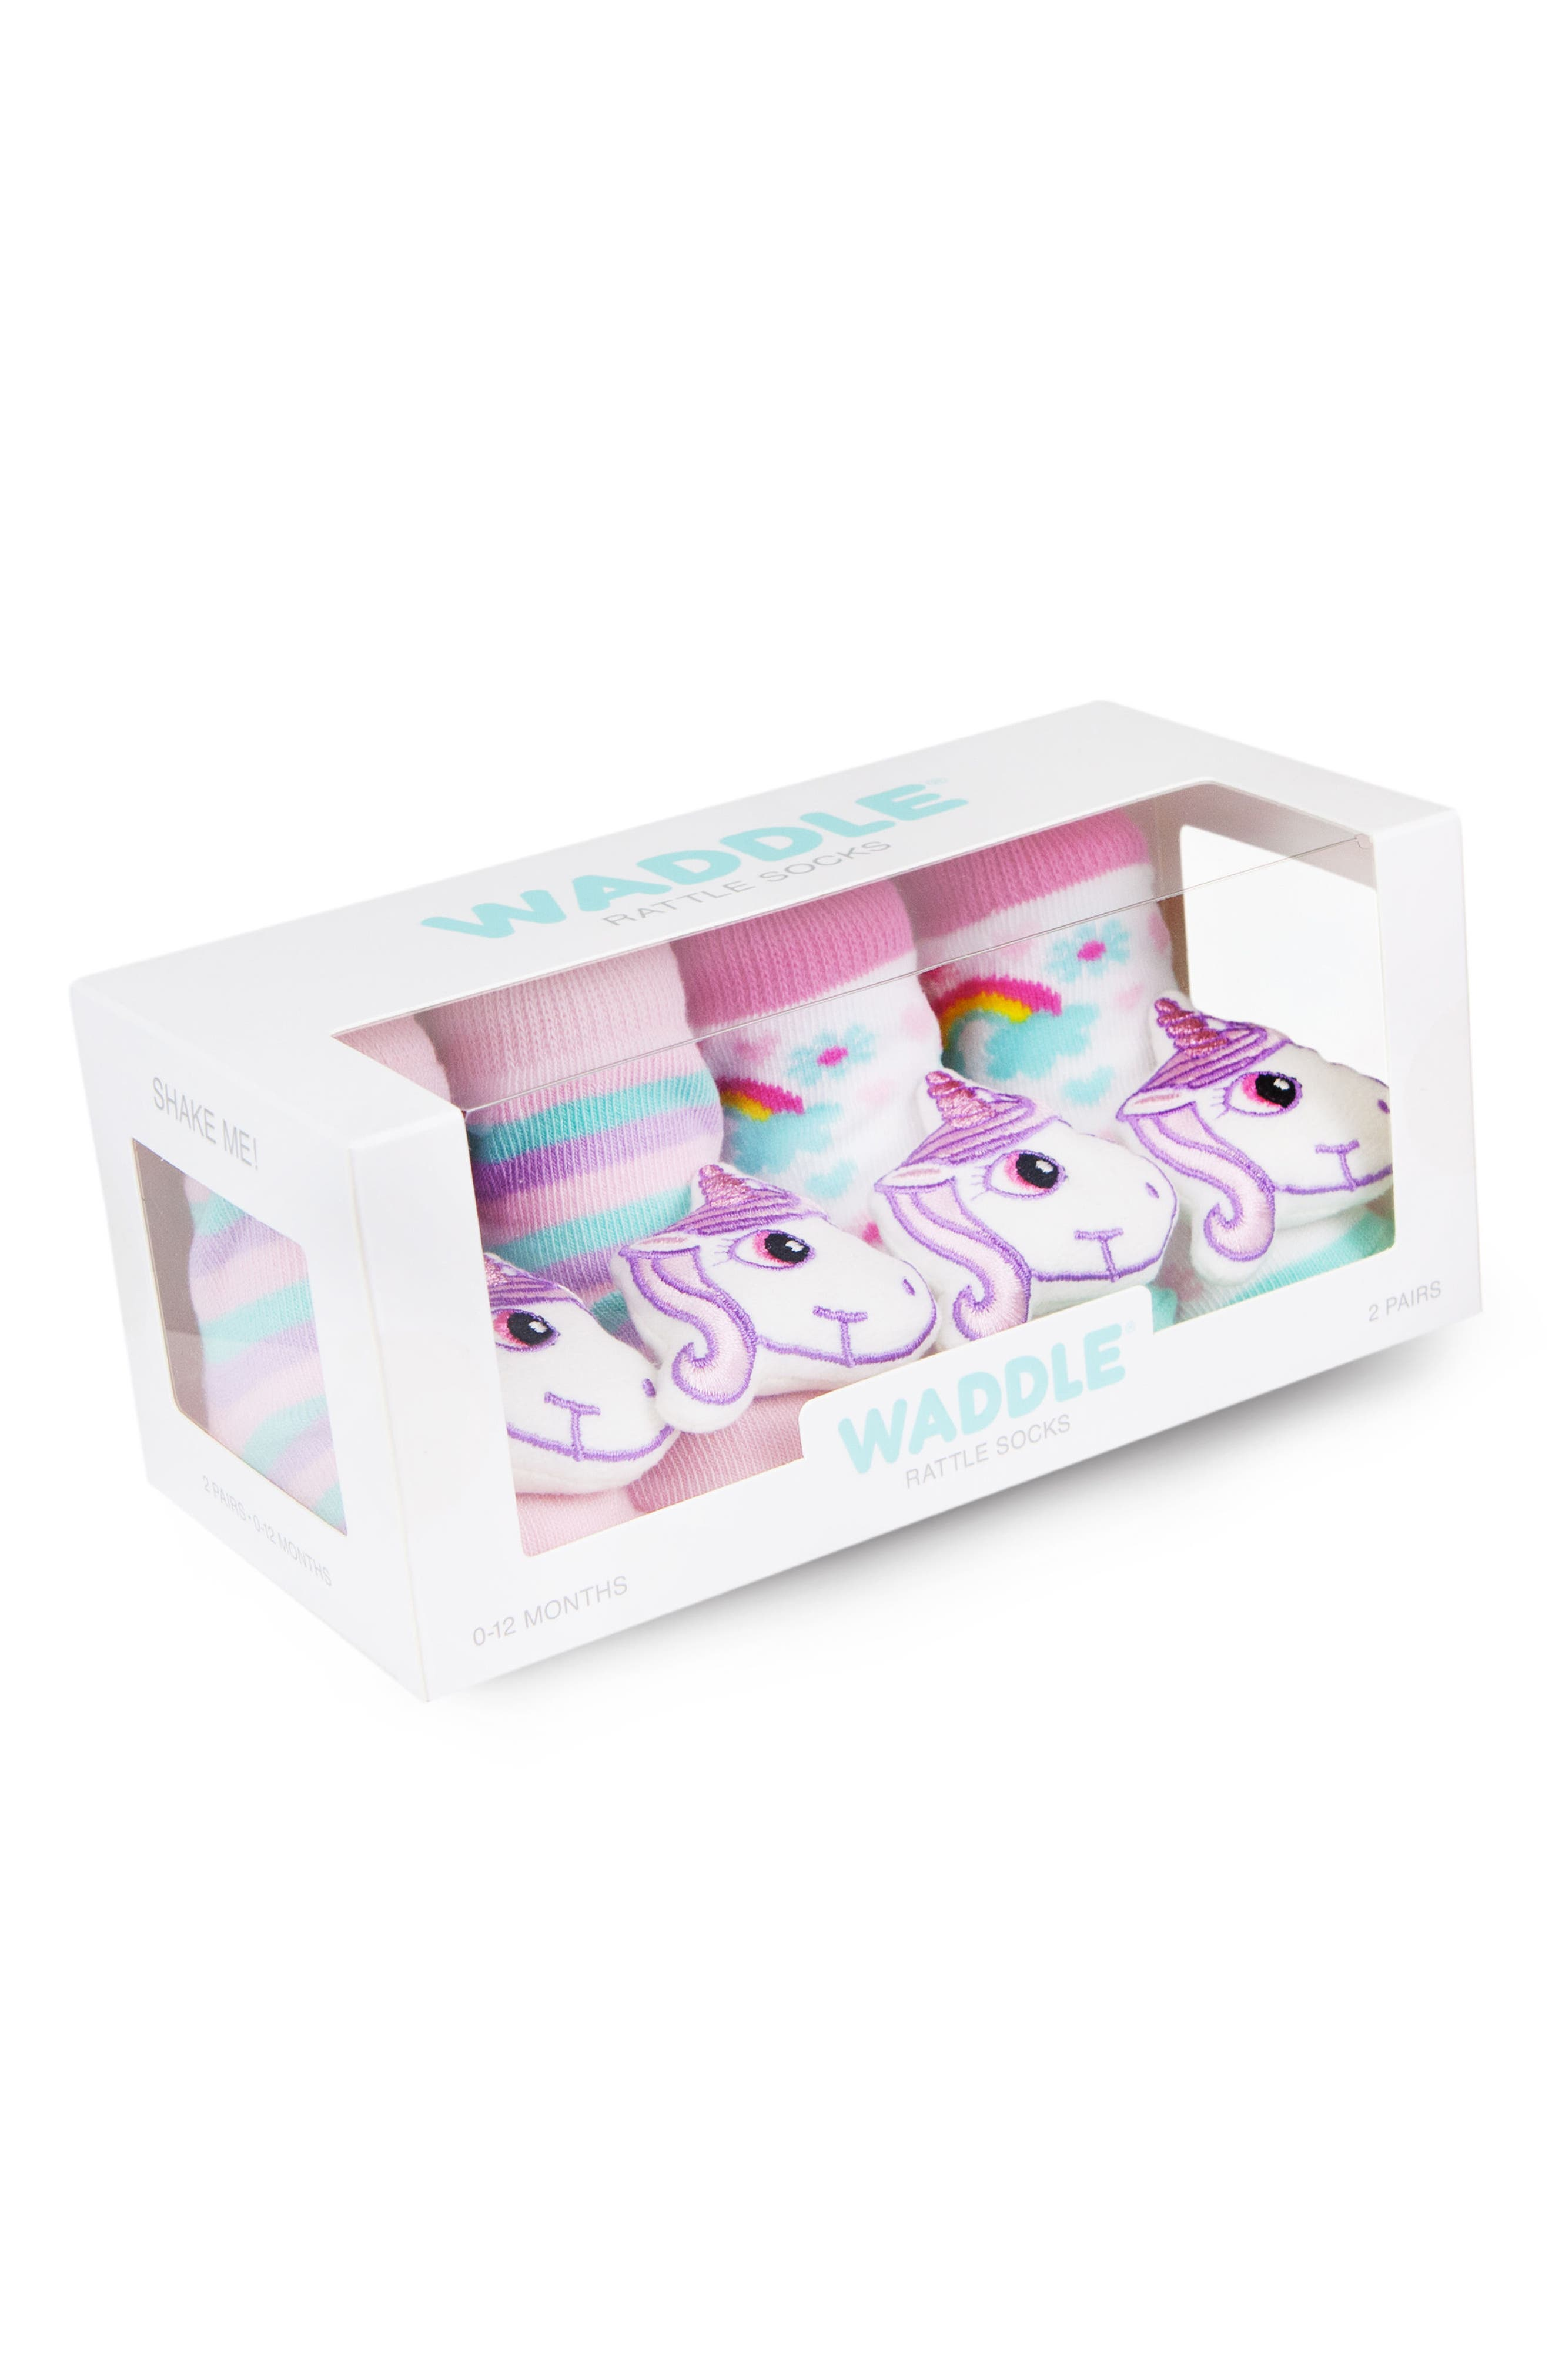 & Friends 2-Pack Unicorn Rattle Socks,                             Alternate thumbnail 3, color,                             Pink/ White